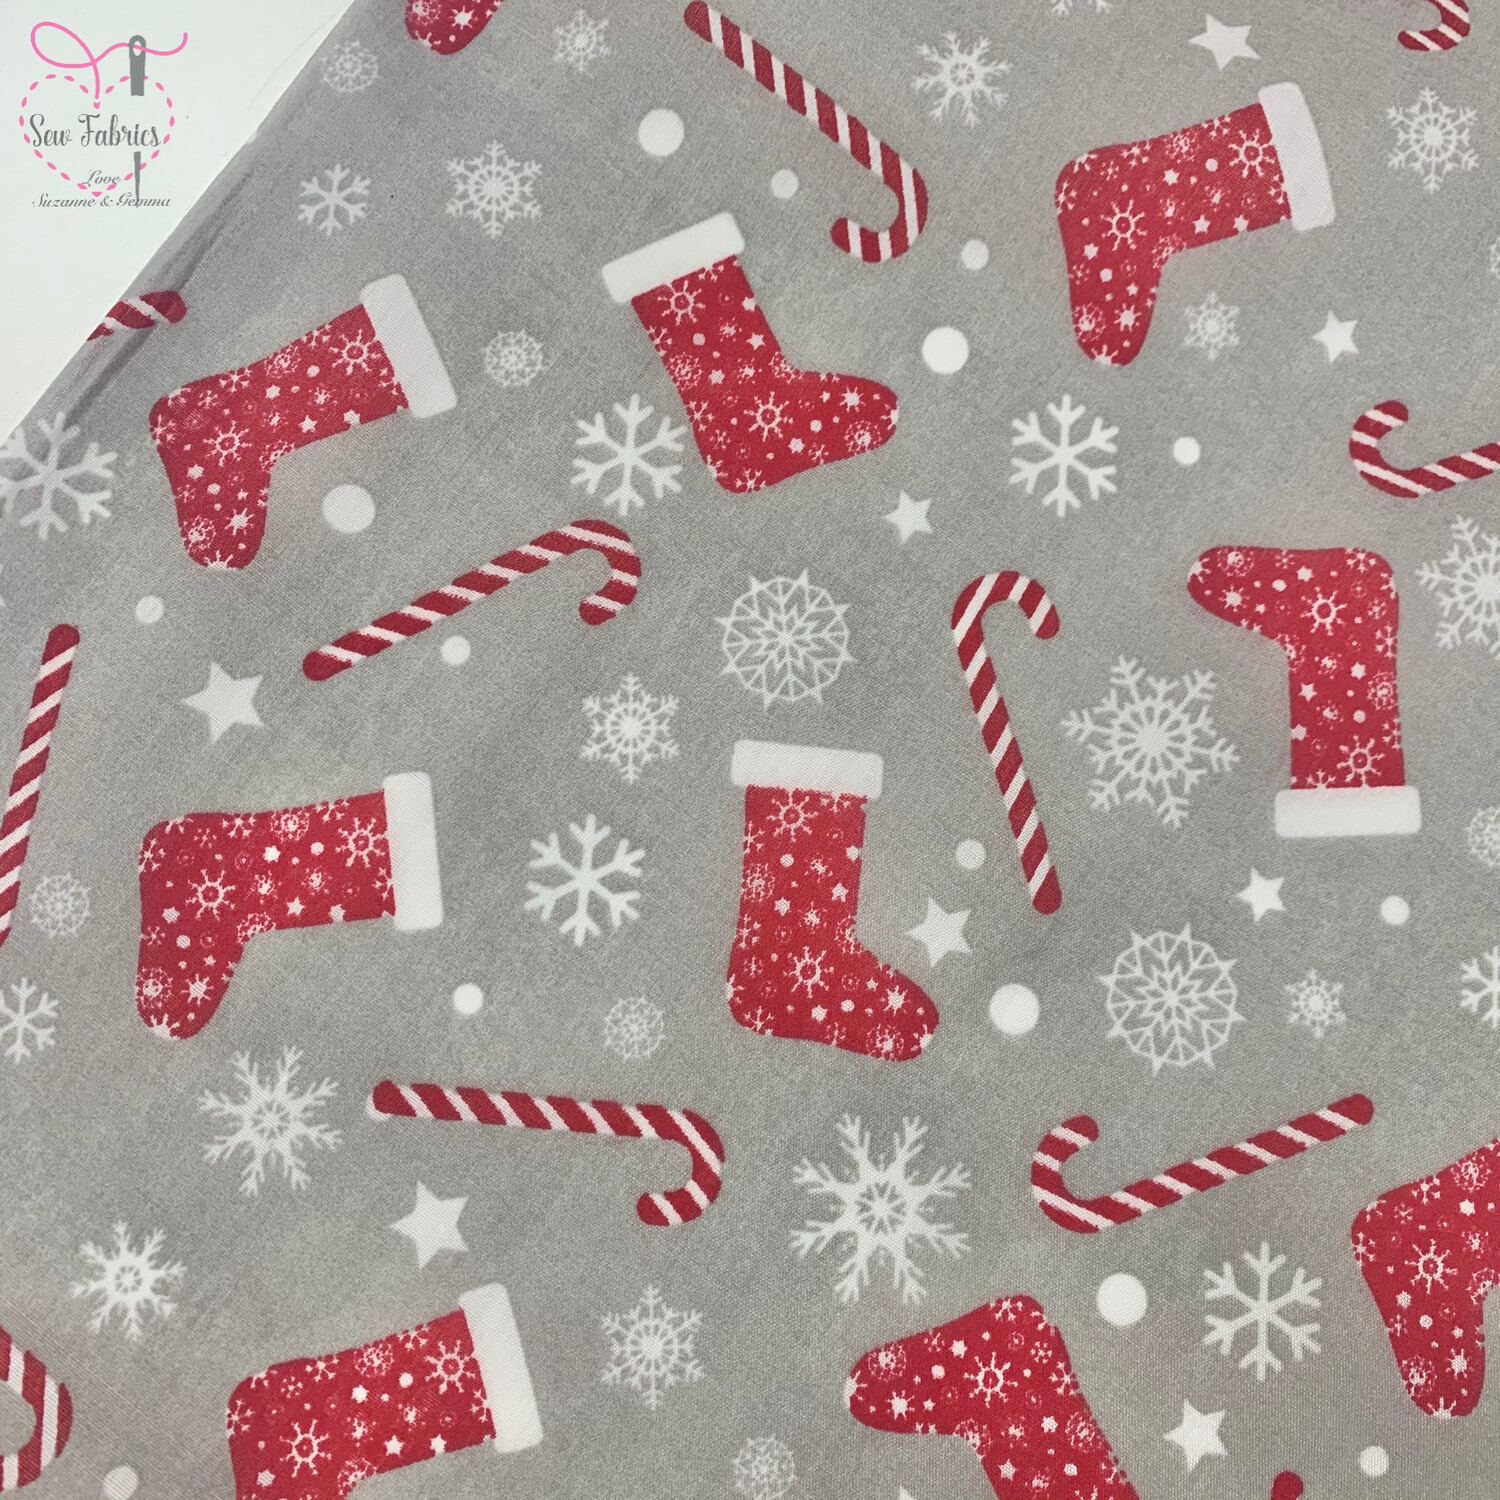 Silver Candy Cane and Christmas Stocking Christmas Print Polycotton Fabric, Novelty Festive Xmas Material